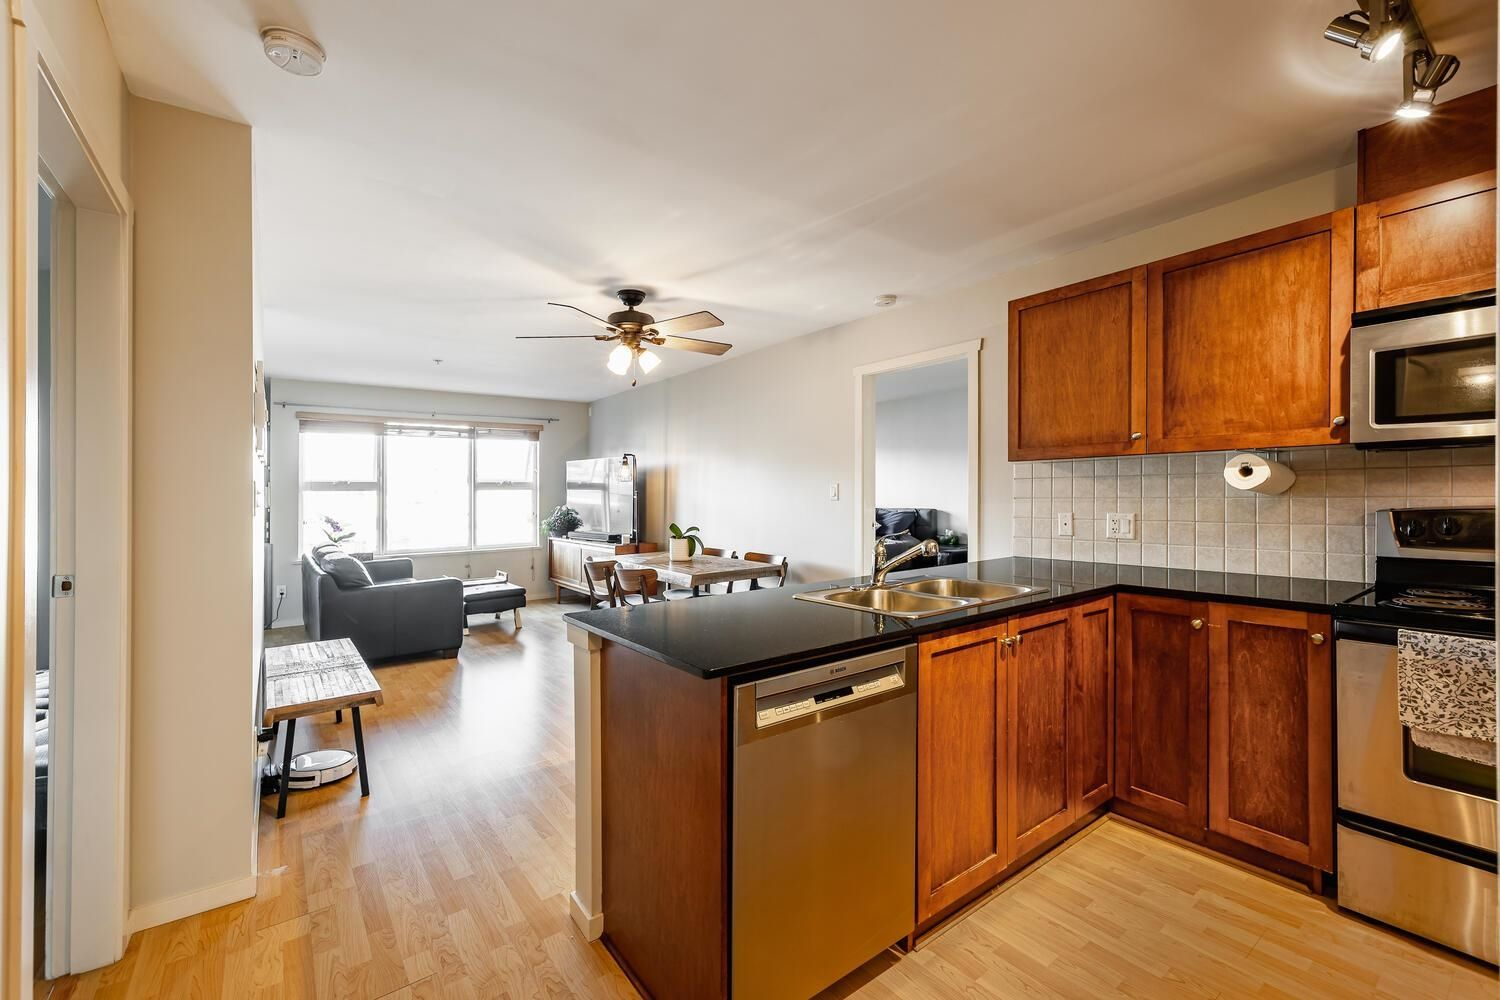 """Main Photo: 411 315 KNOX Street in New Westminster: Sapperton Condo for sale in """"San Marino"""" : MLS®# R2620316"""